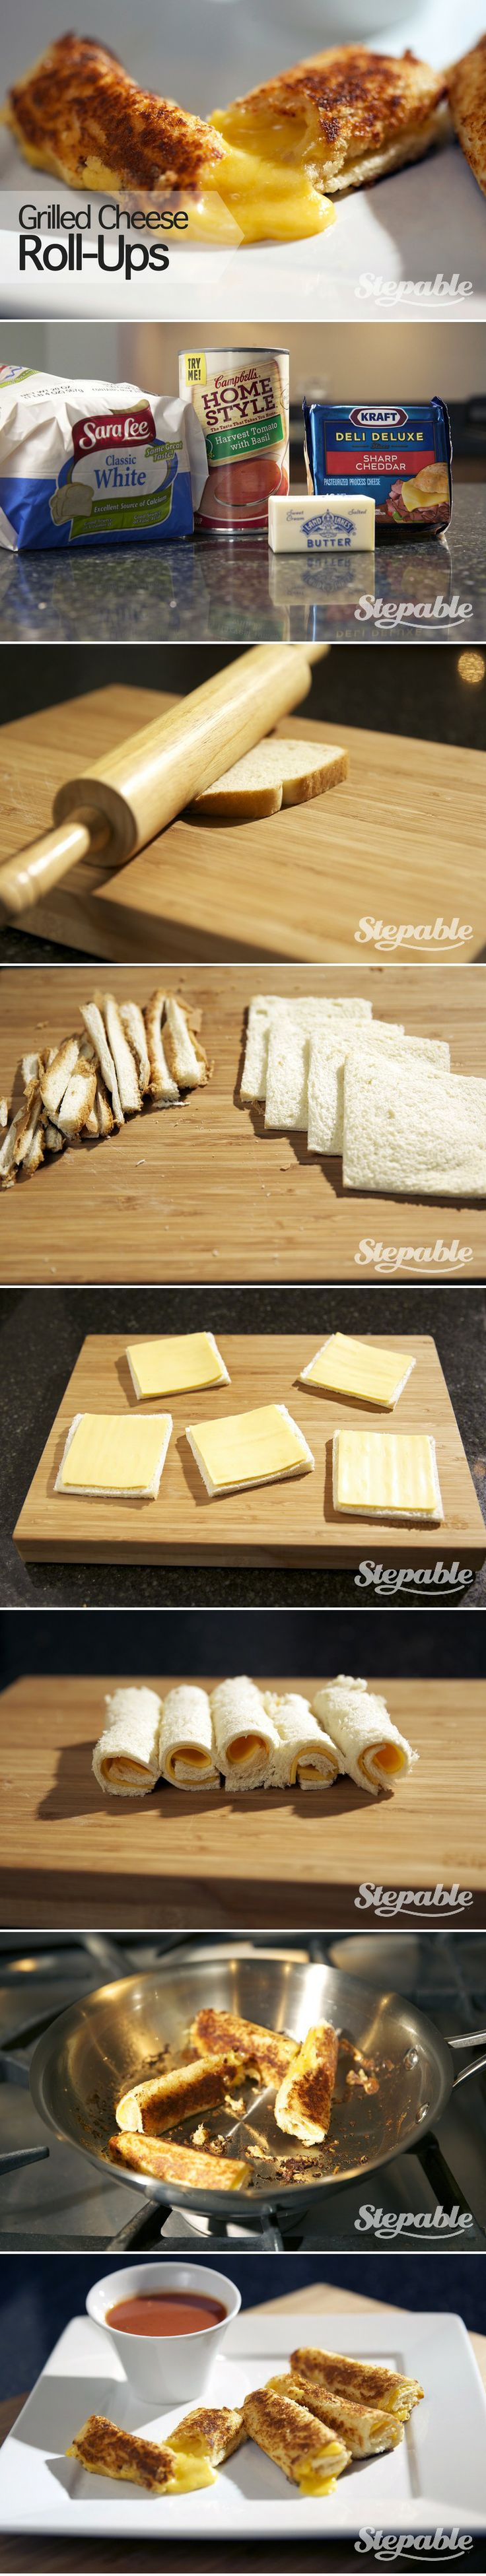 Grilled Cheese Roll-Ups #stepable